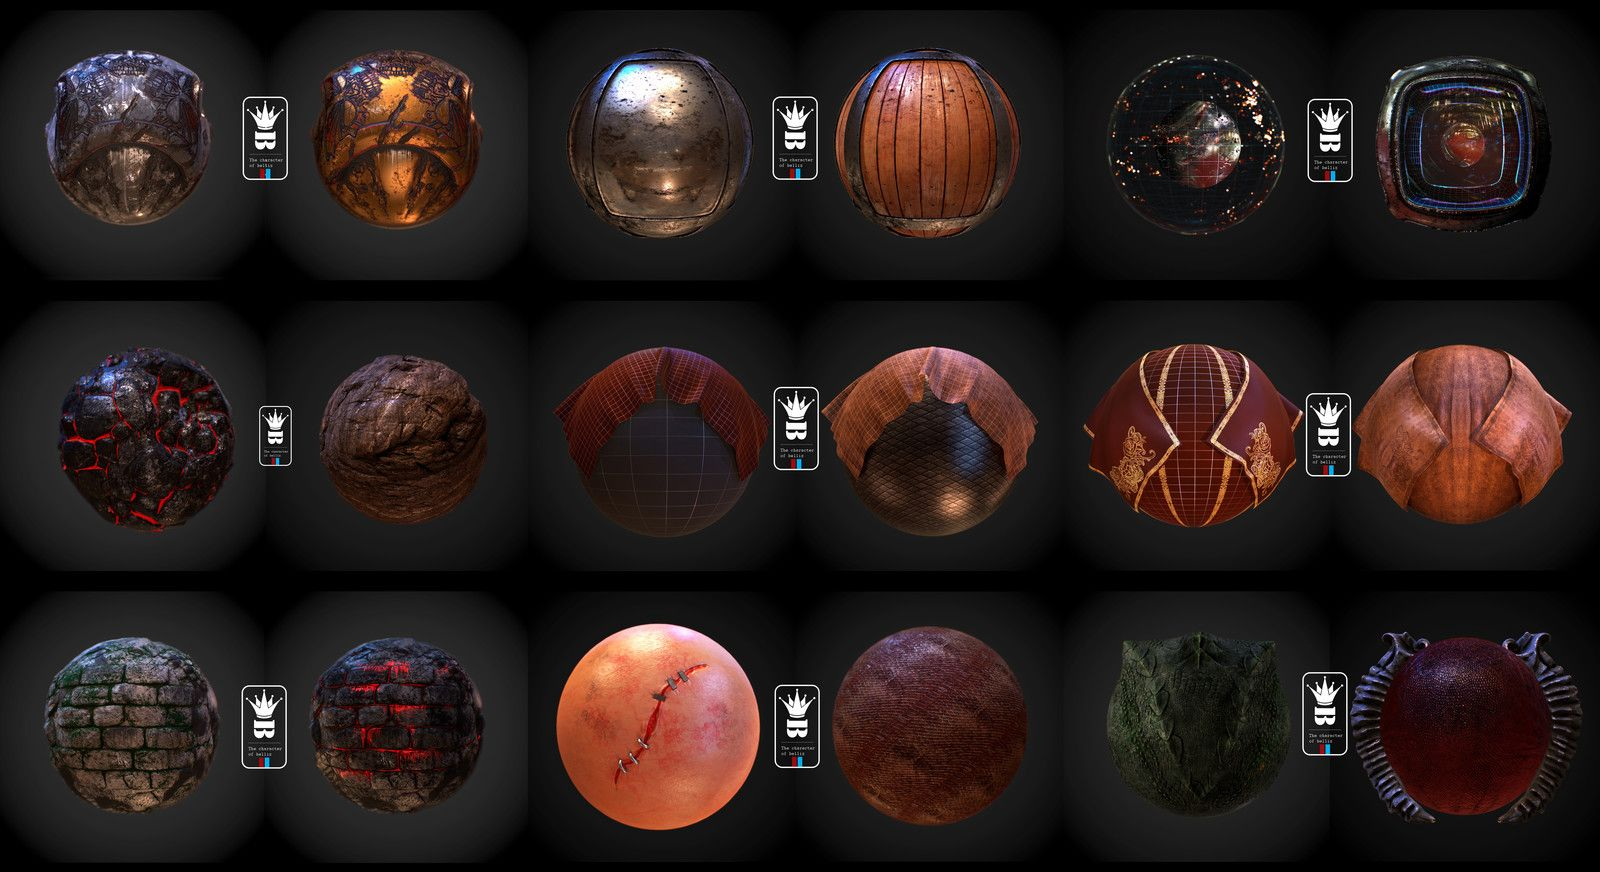 Matmaterial texture ball, wichanan sarajan on ArtStation at https://www.artstation.com/artwork/YPLY3